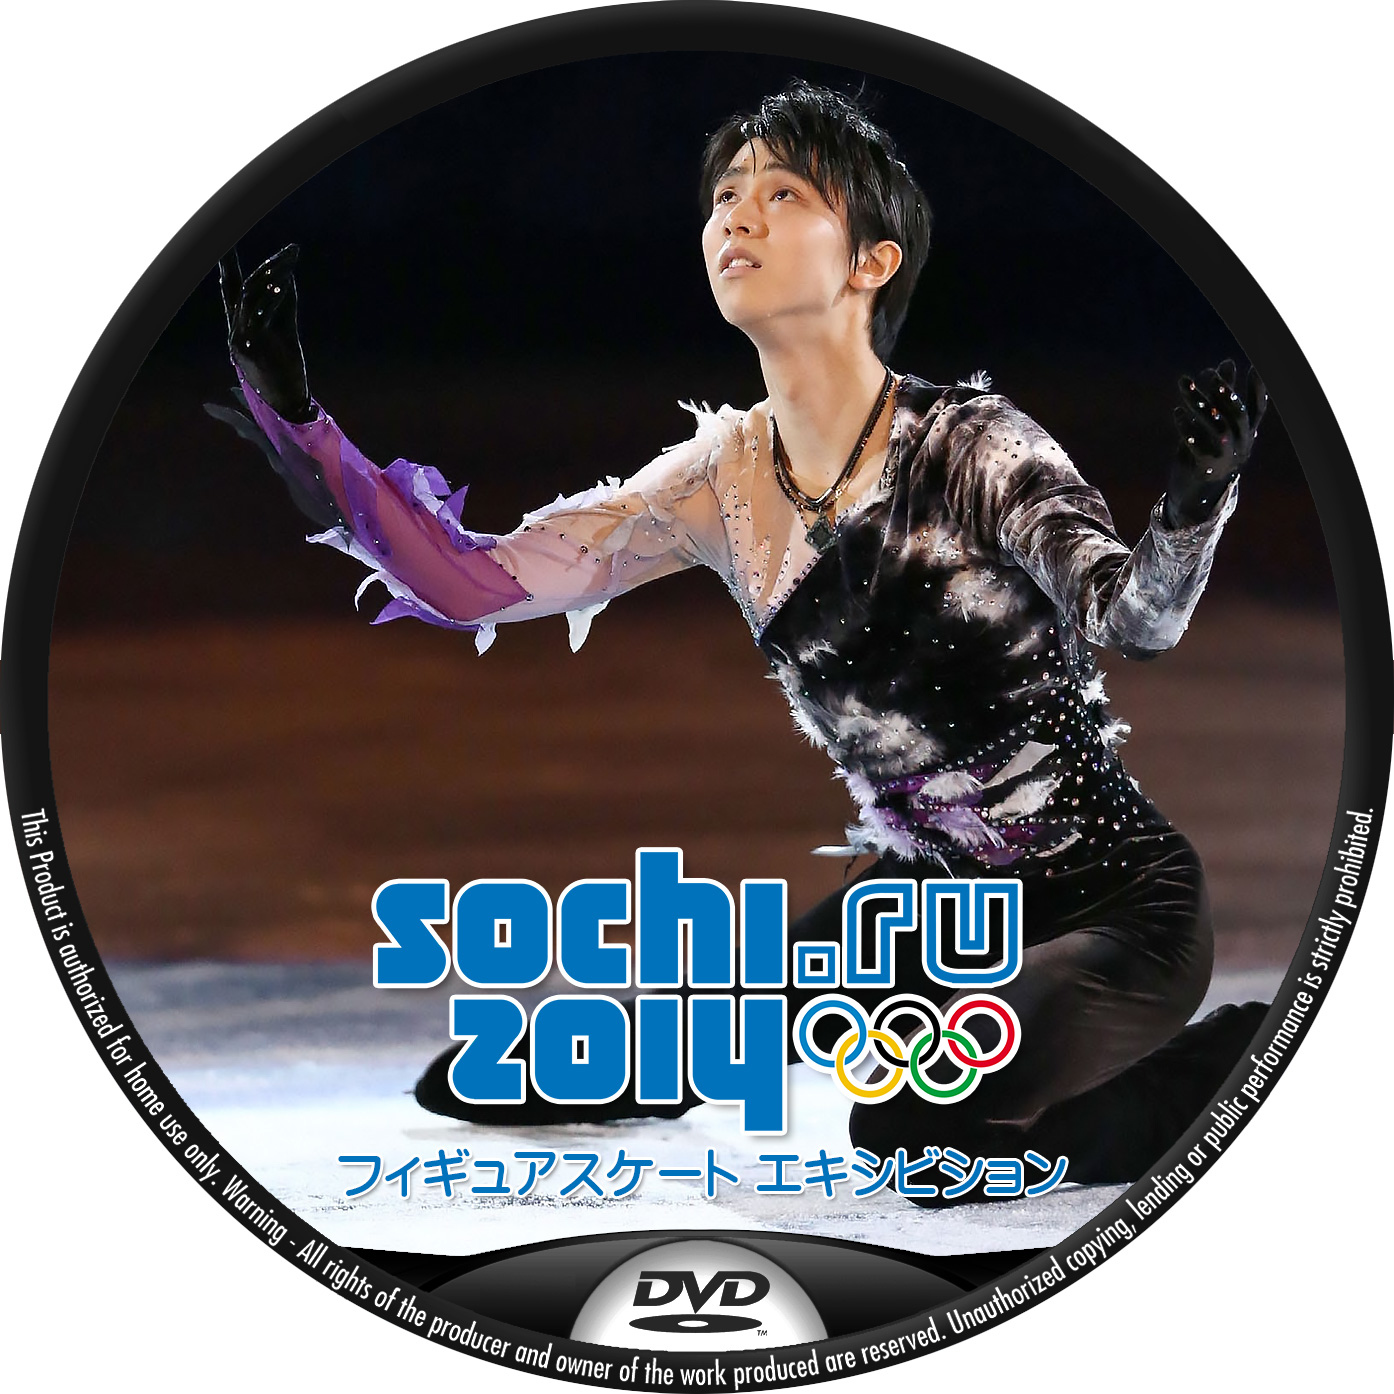 Sochi_Figure_Exhibition-DVD2